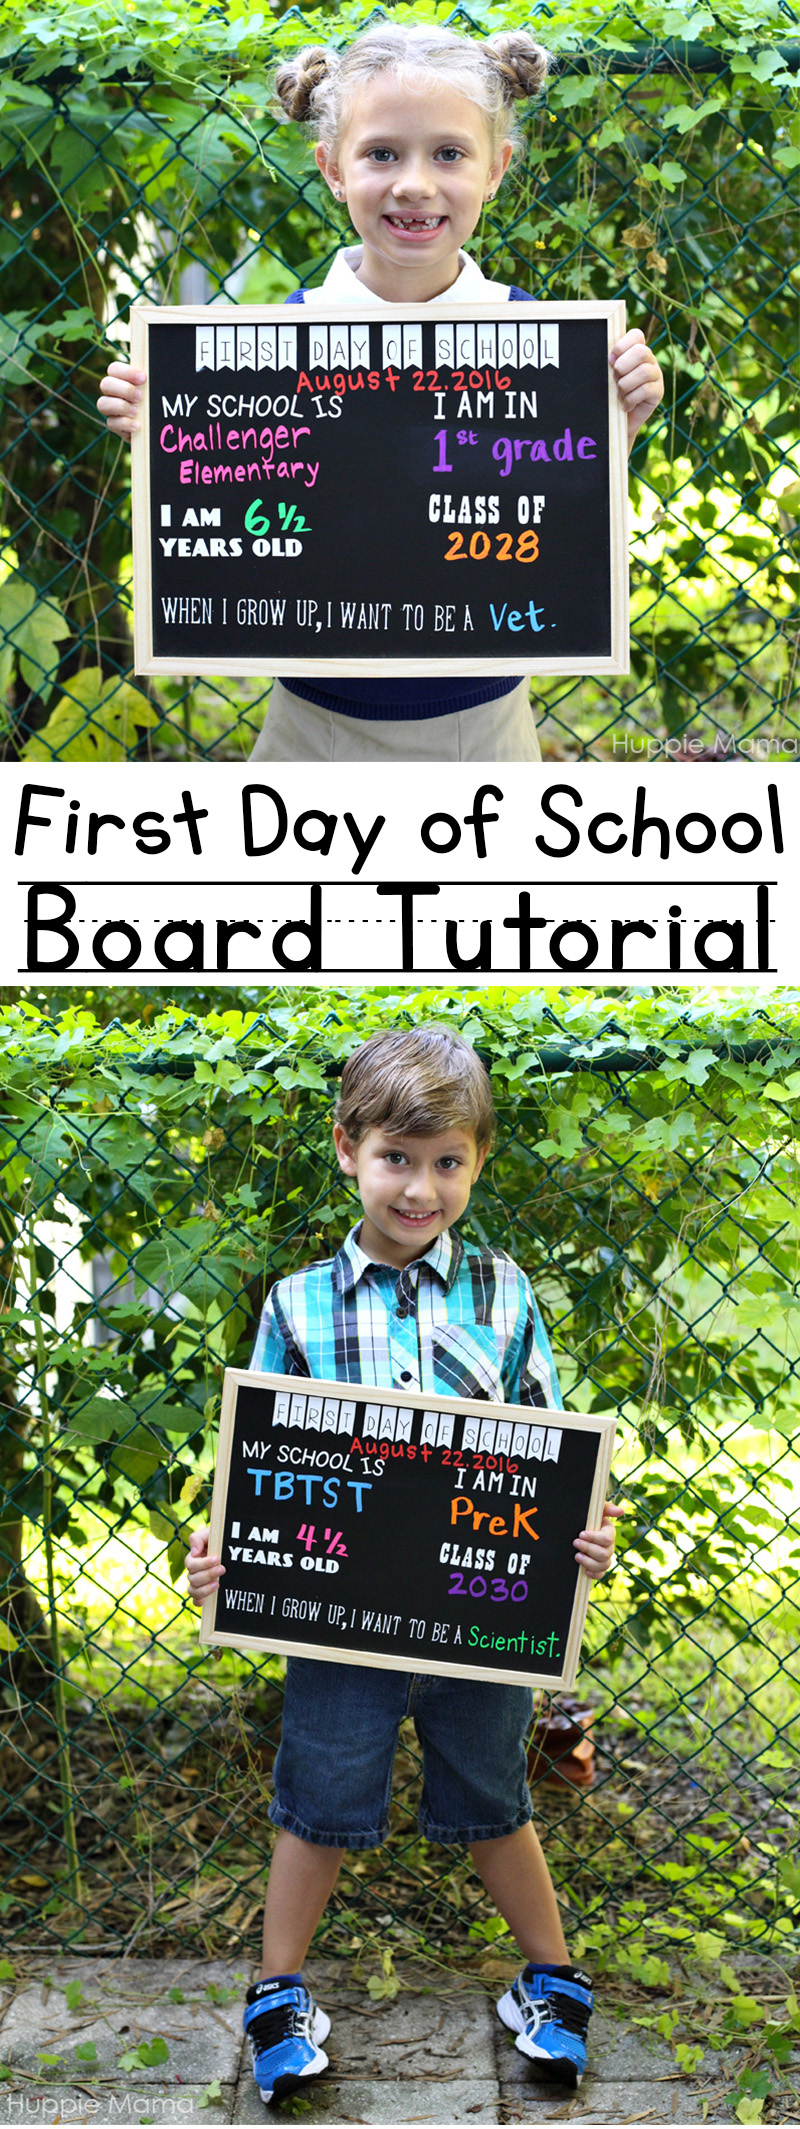 First Day of School Board Tutorial